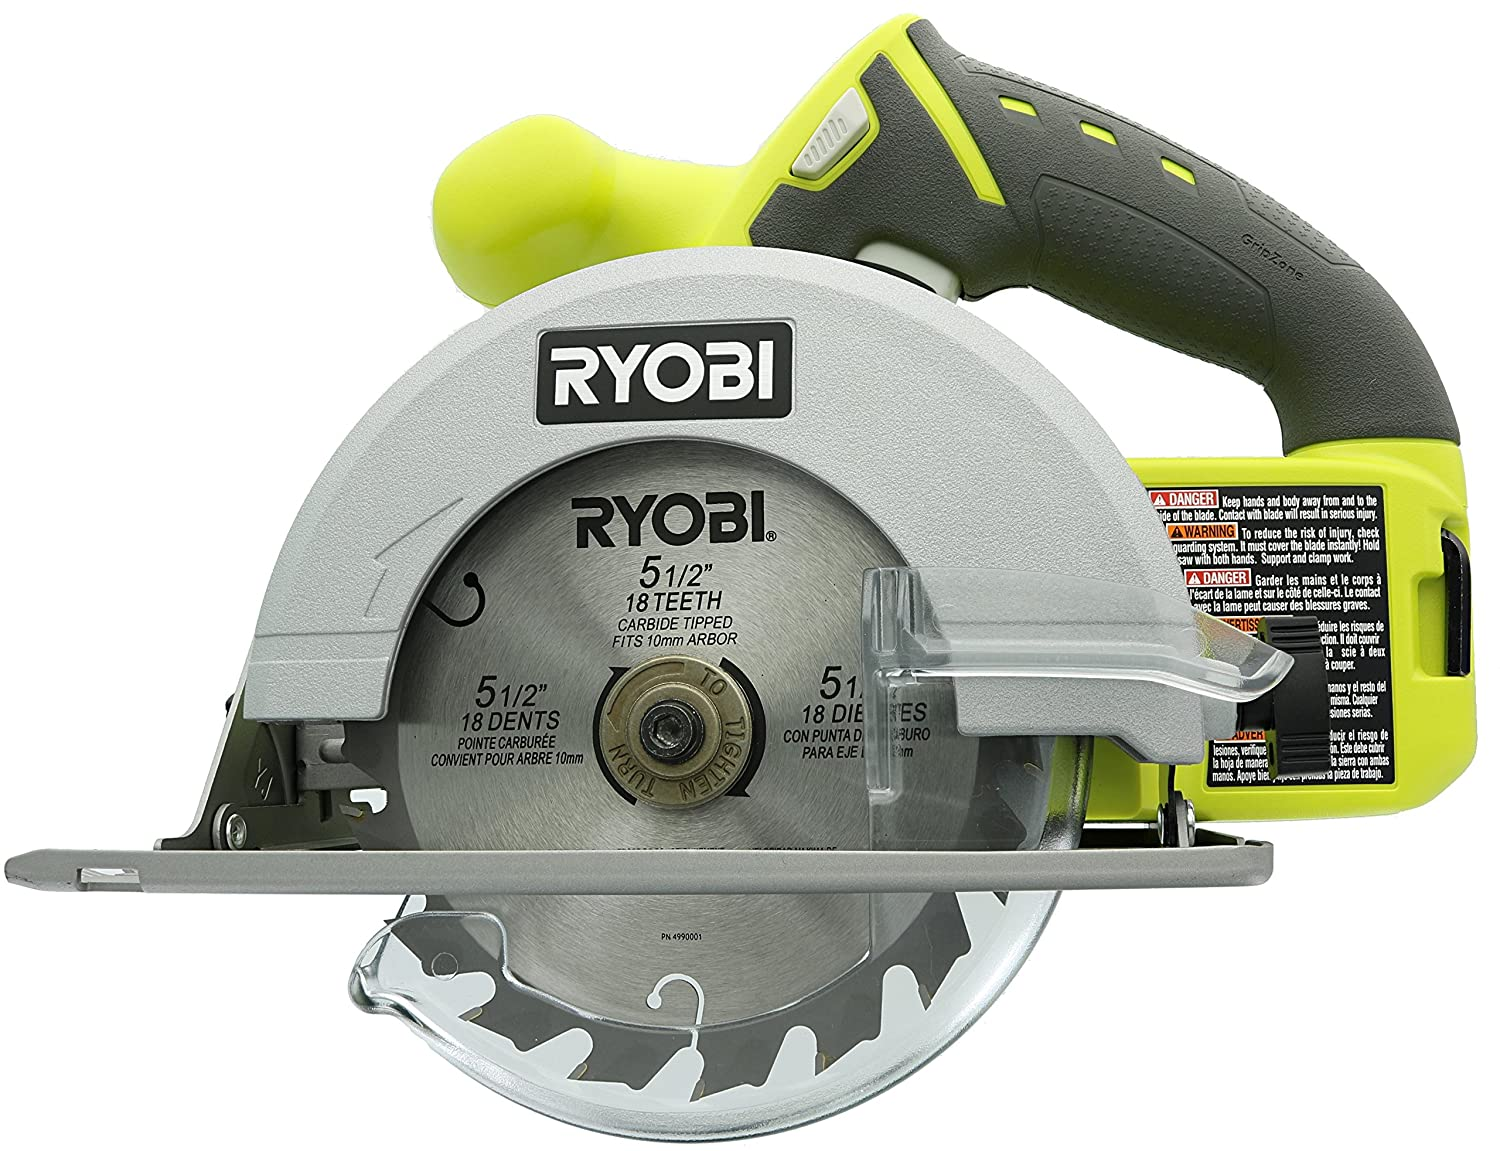 Ryobi p504g one 18 v lithium ion cordless 5 12 inch circular saw w ryobi p504g one 18 v lithium ion cordless 5 12 inch circular saw w carbide tip blade battery not included power tool only power circular saws greentooth Image collections